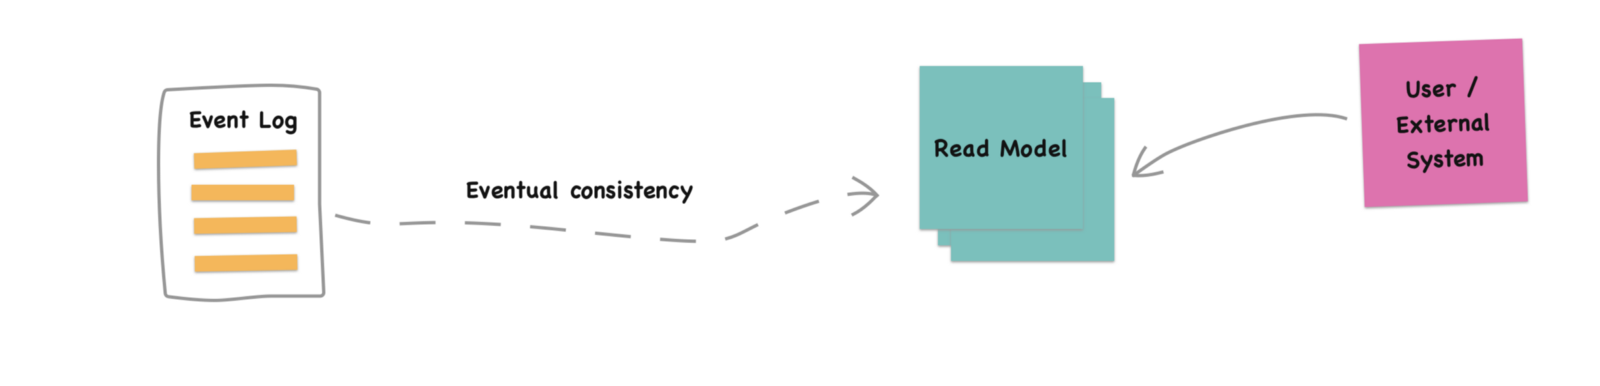 Create read models from events